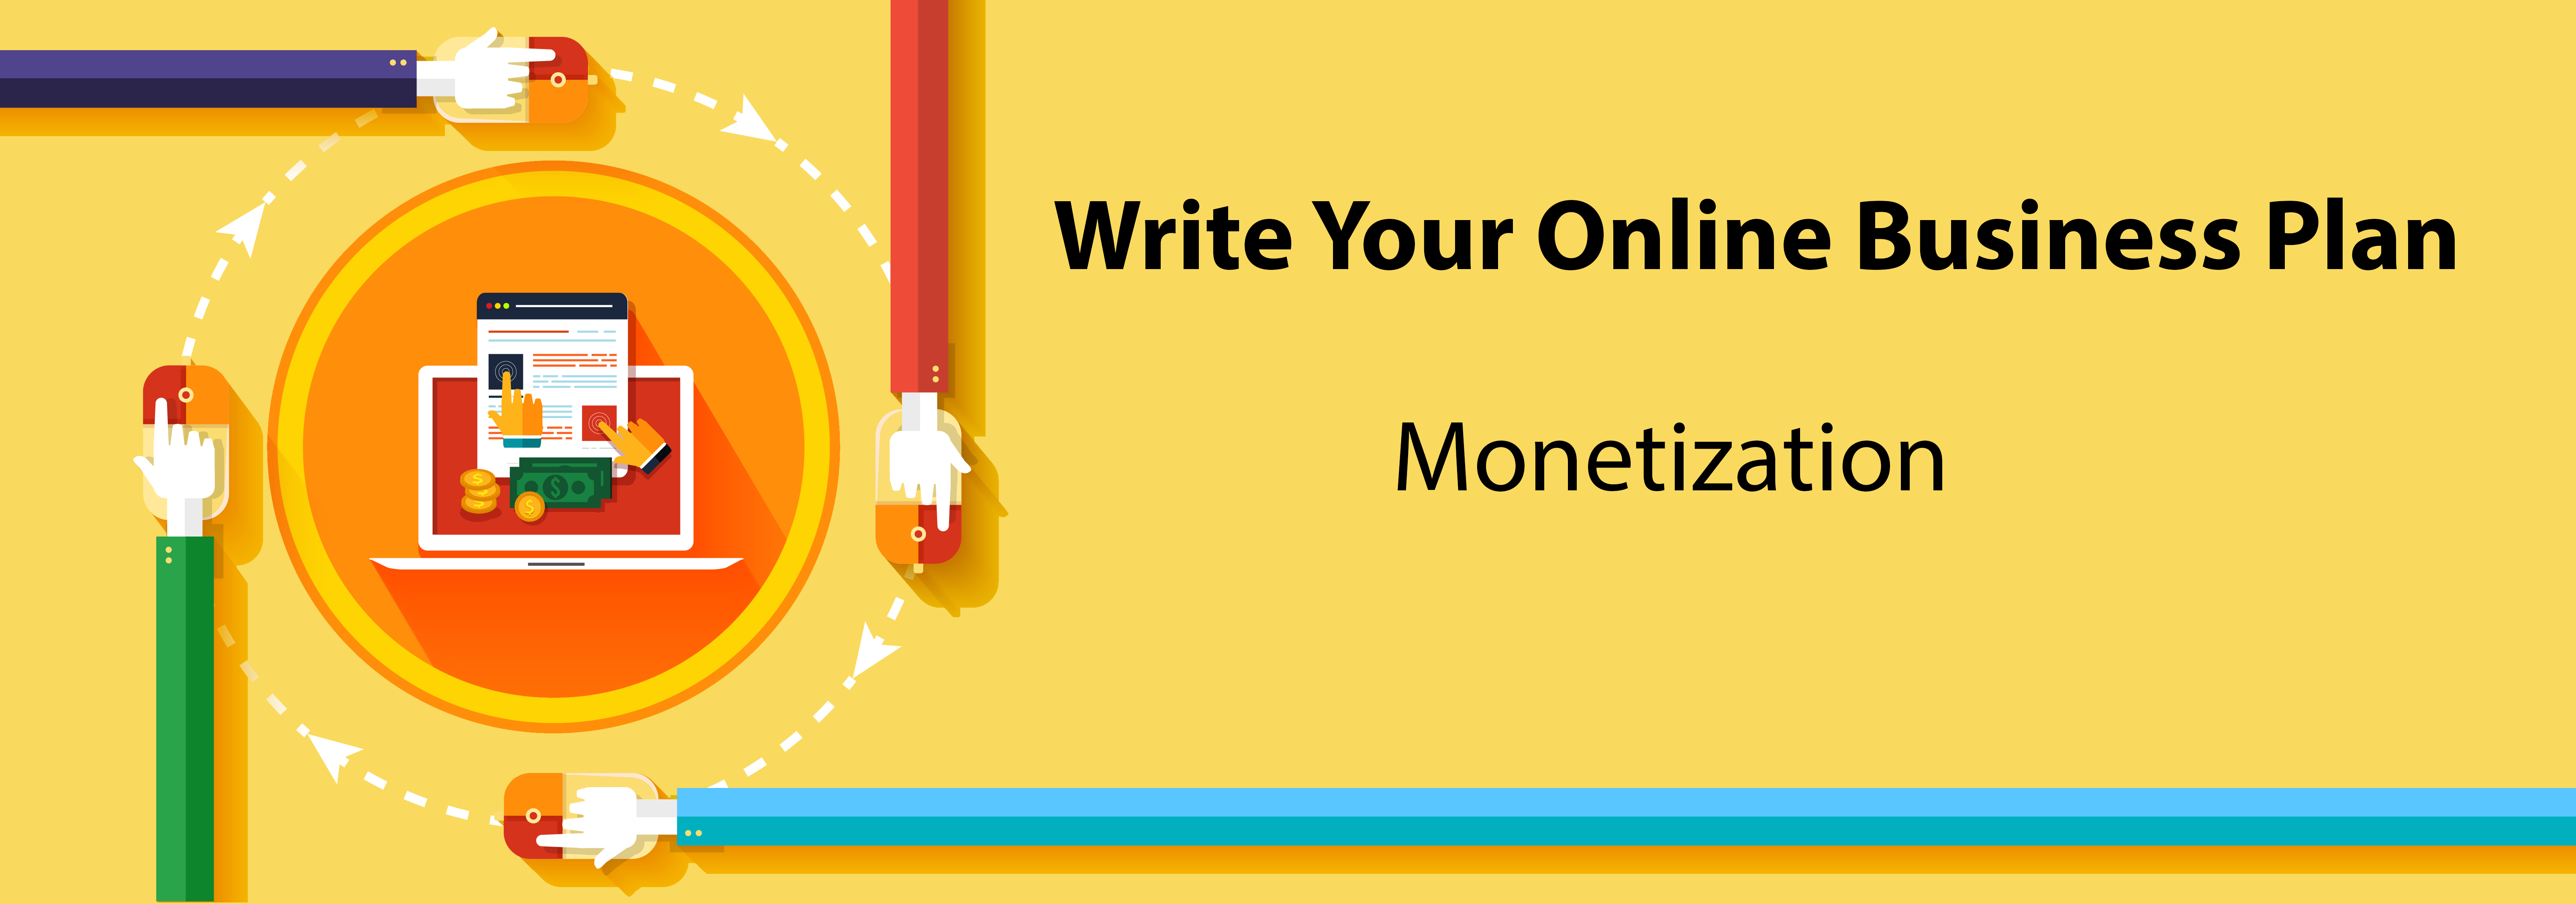 Write Your Online Business Plan: Monetization